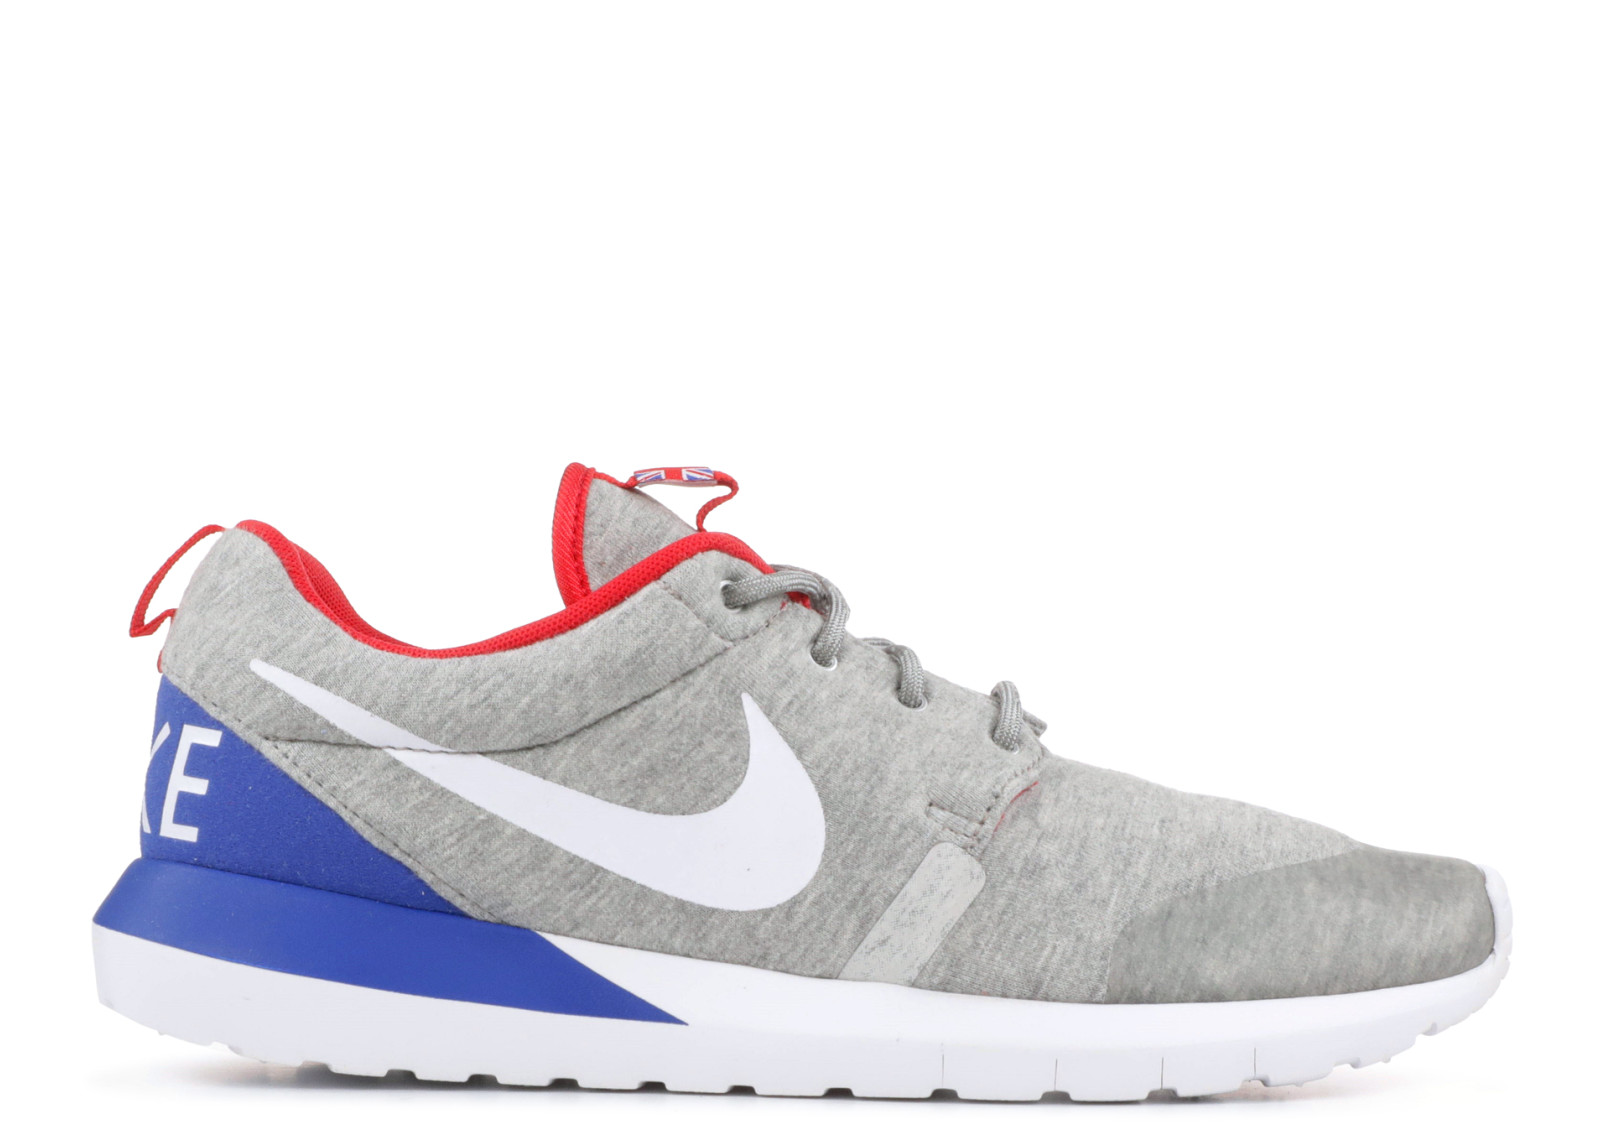 8f4697634b3a4 Roshe Run Nm W Sp Great Britain Heather Grey University White Red ...